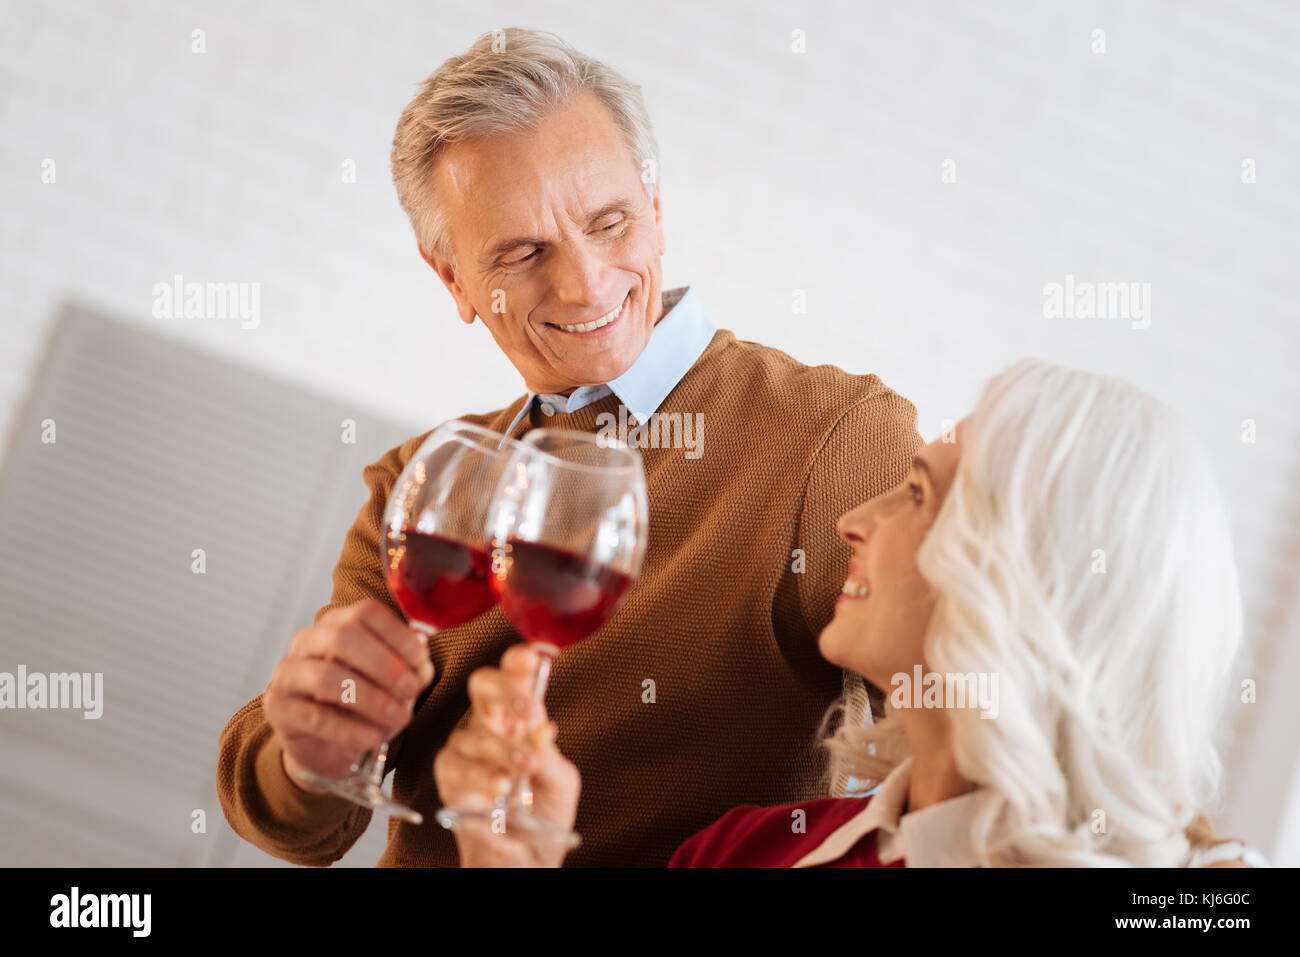 Romantic elderly couple celebrating their anniversary - Stock Image